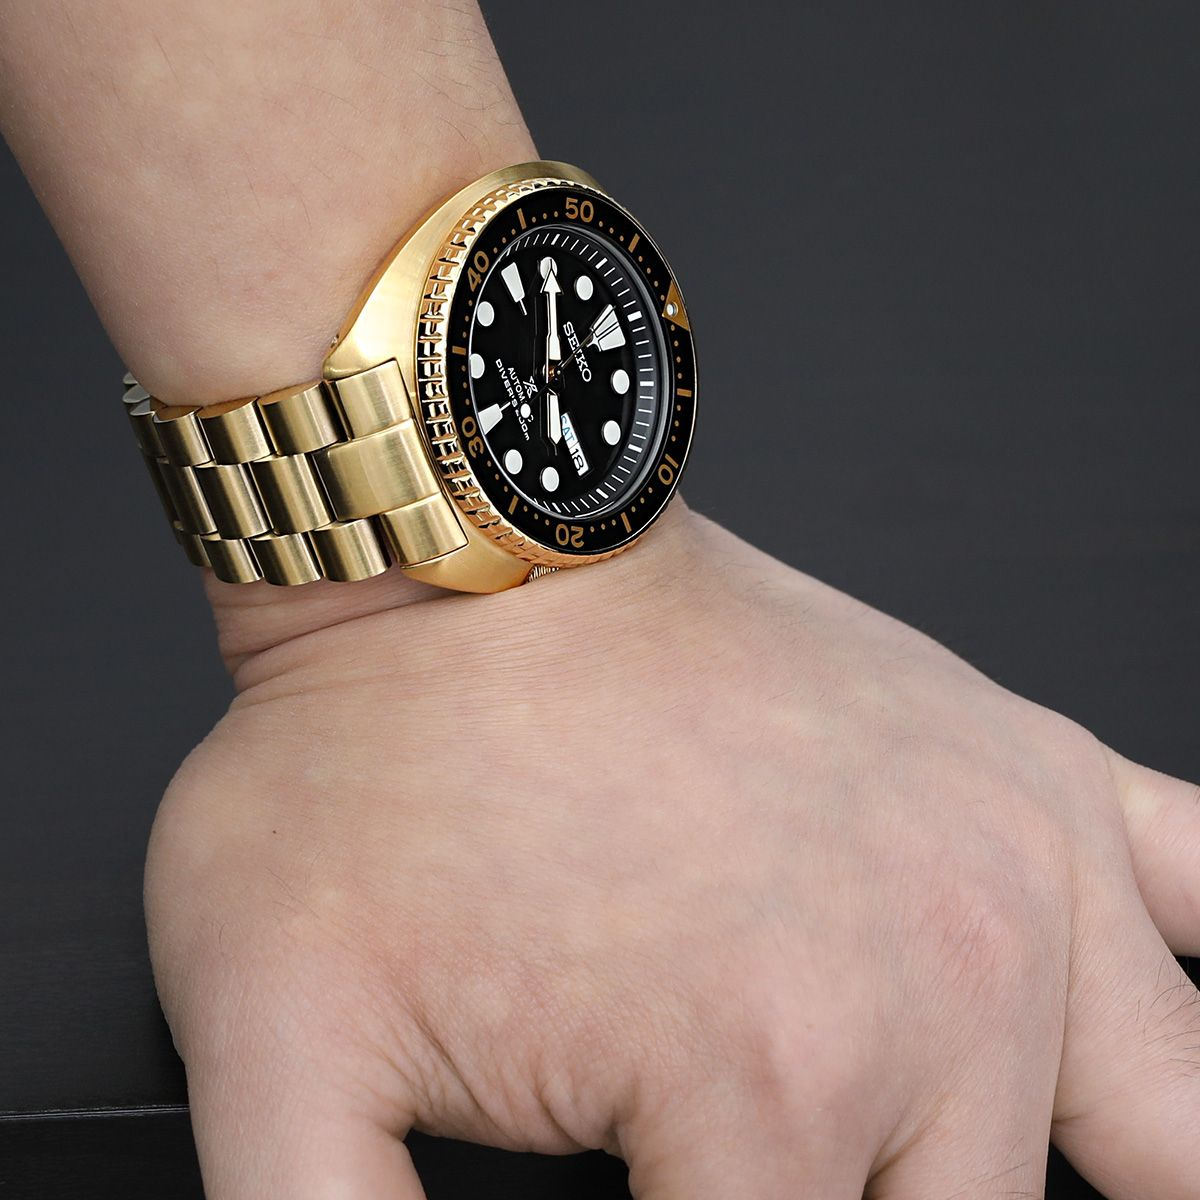 94d7fc40d8d Don t miss out or wait another couple weeks for us to restock!⌚ 22mm  Endmill 316L Stainless Steel Watch Bracelet for Seiko New Turtles SRP777